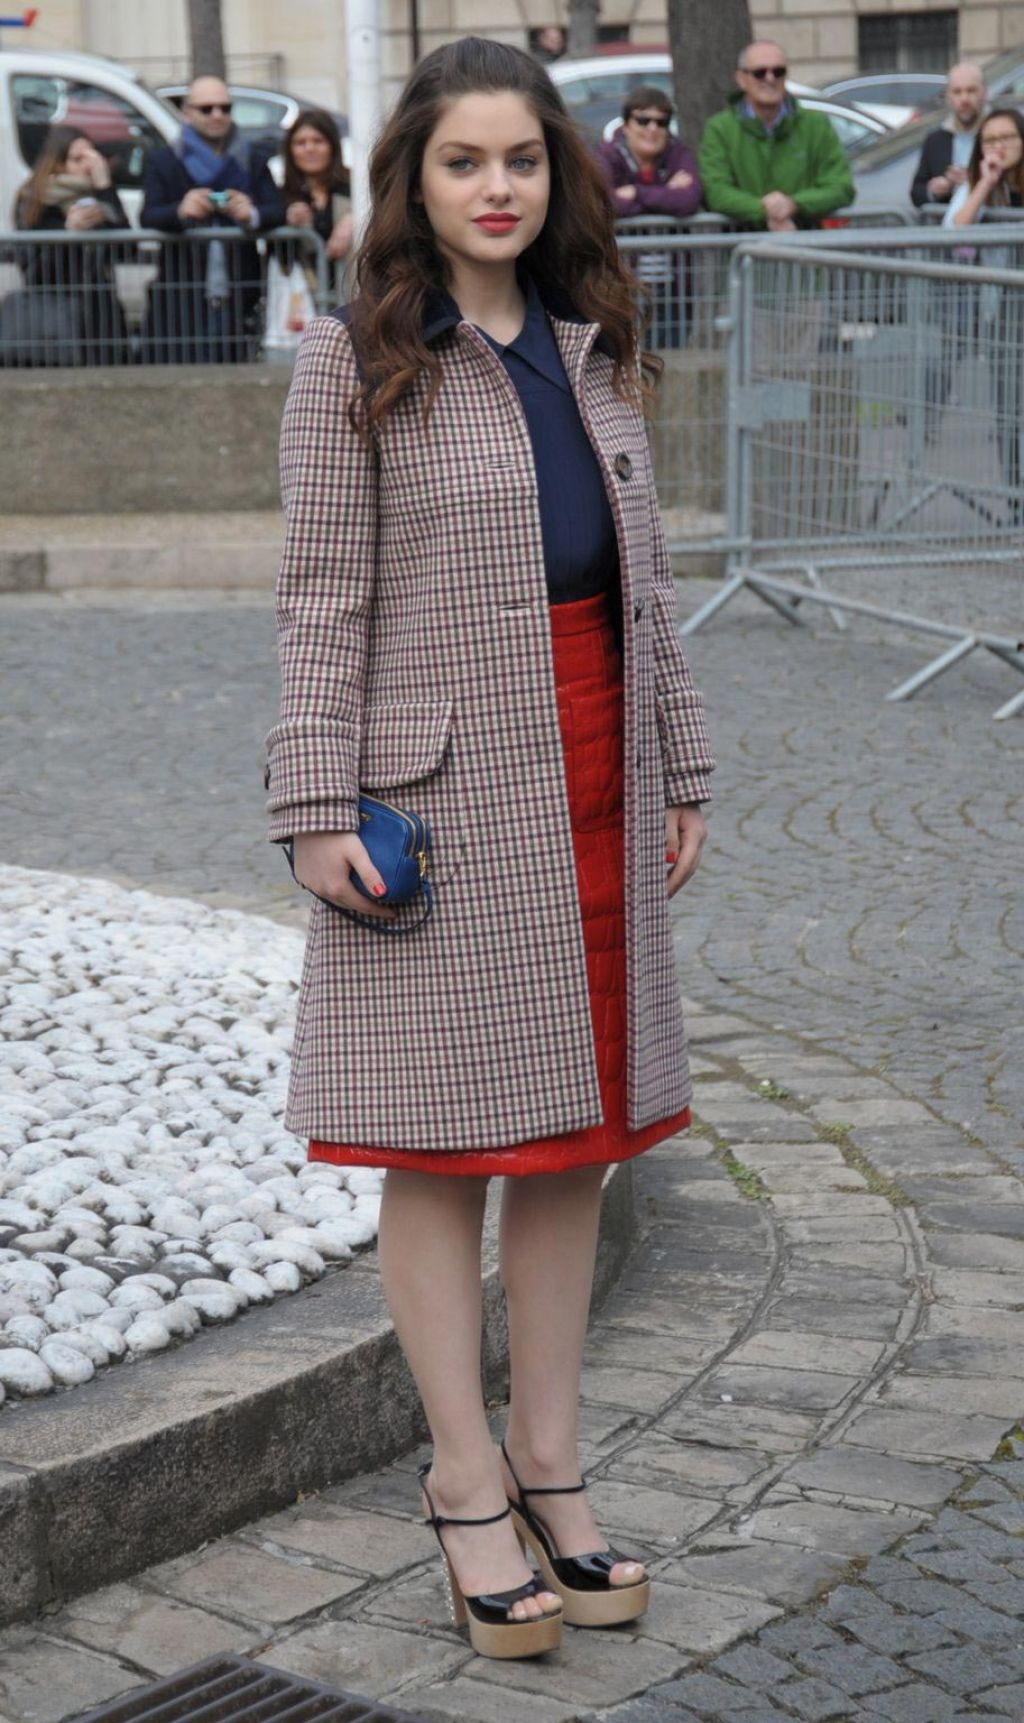 Odeya Rush - Leaves Miu Miu Fashion Show - March 2015